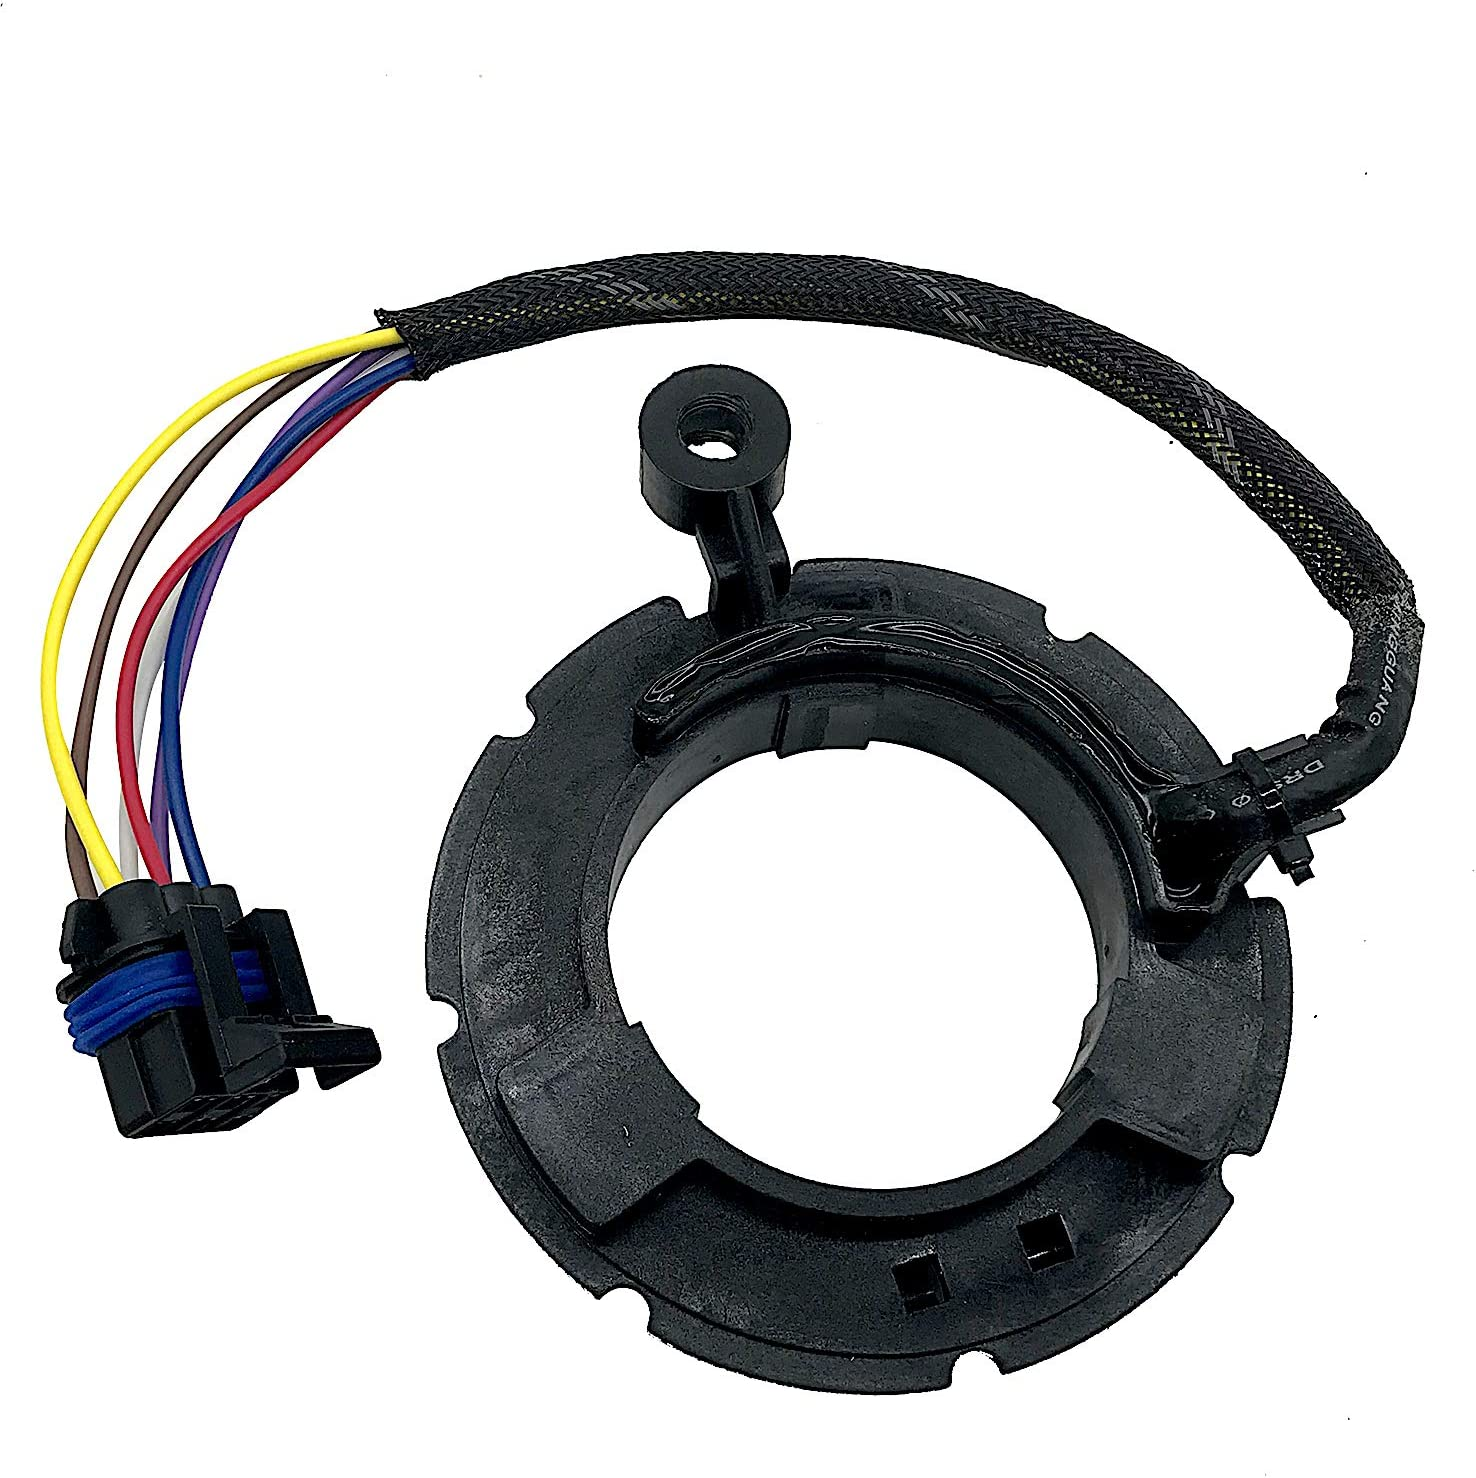 JETUNIT TRIGGER FOR MERCURY OUTBOARD 134-6456-18 96455A18 96455T18 135 150 175 200 XR6 HP 2.5L & 240 HP